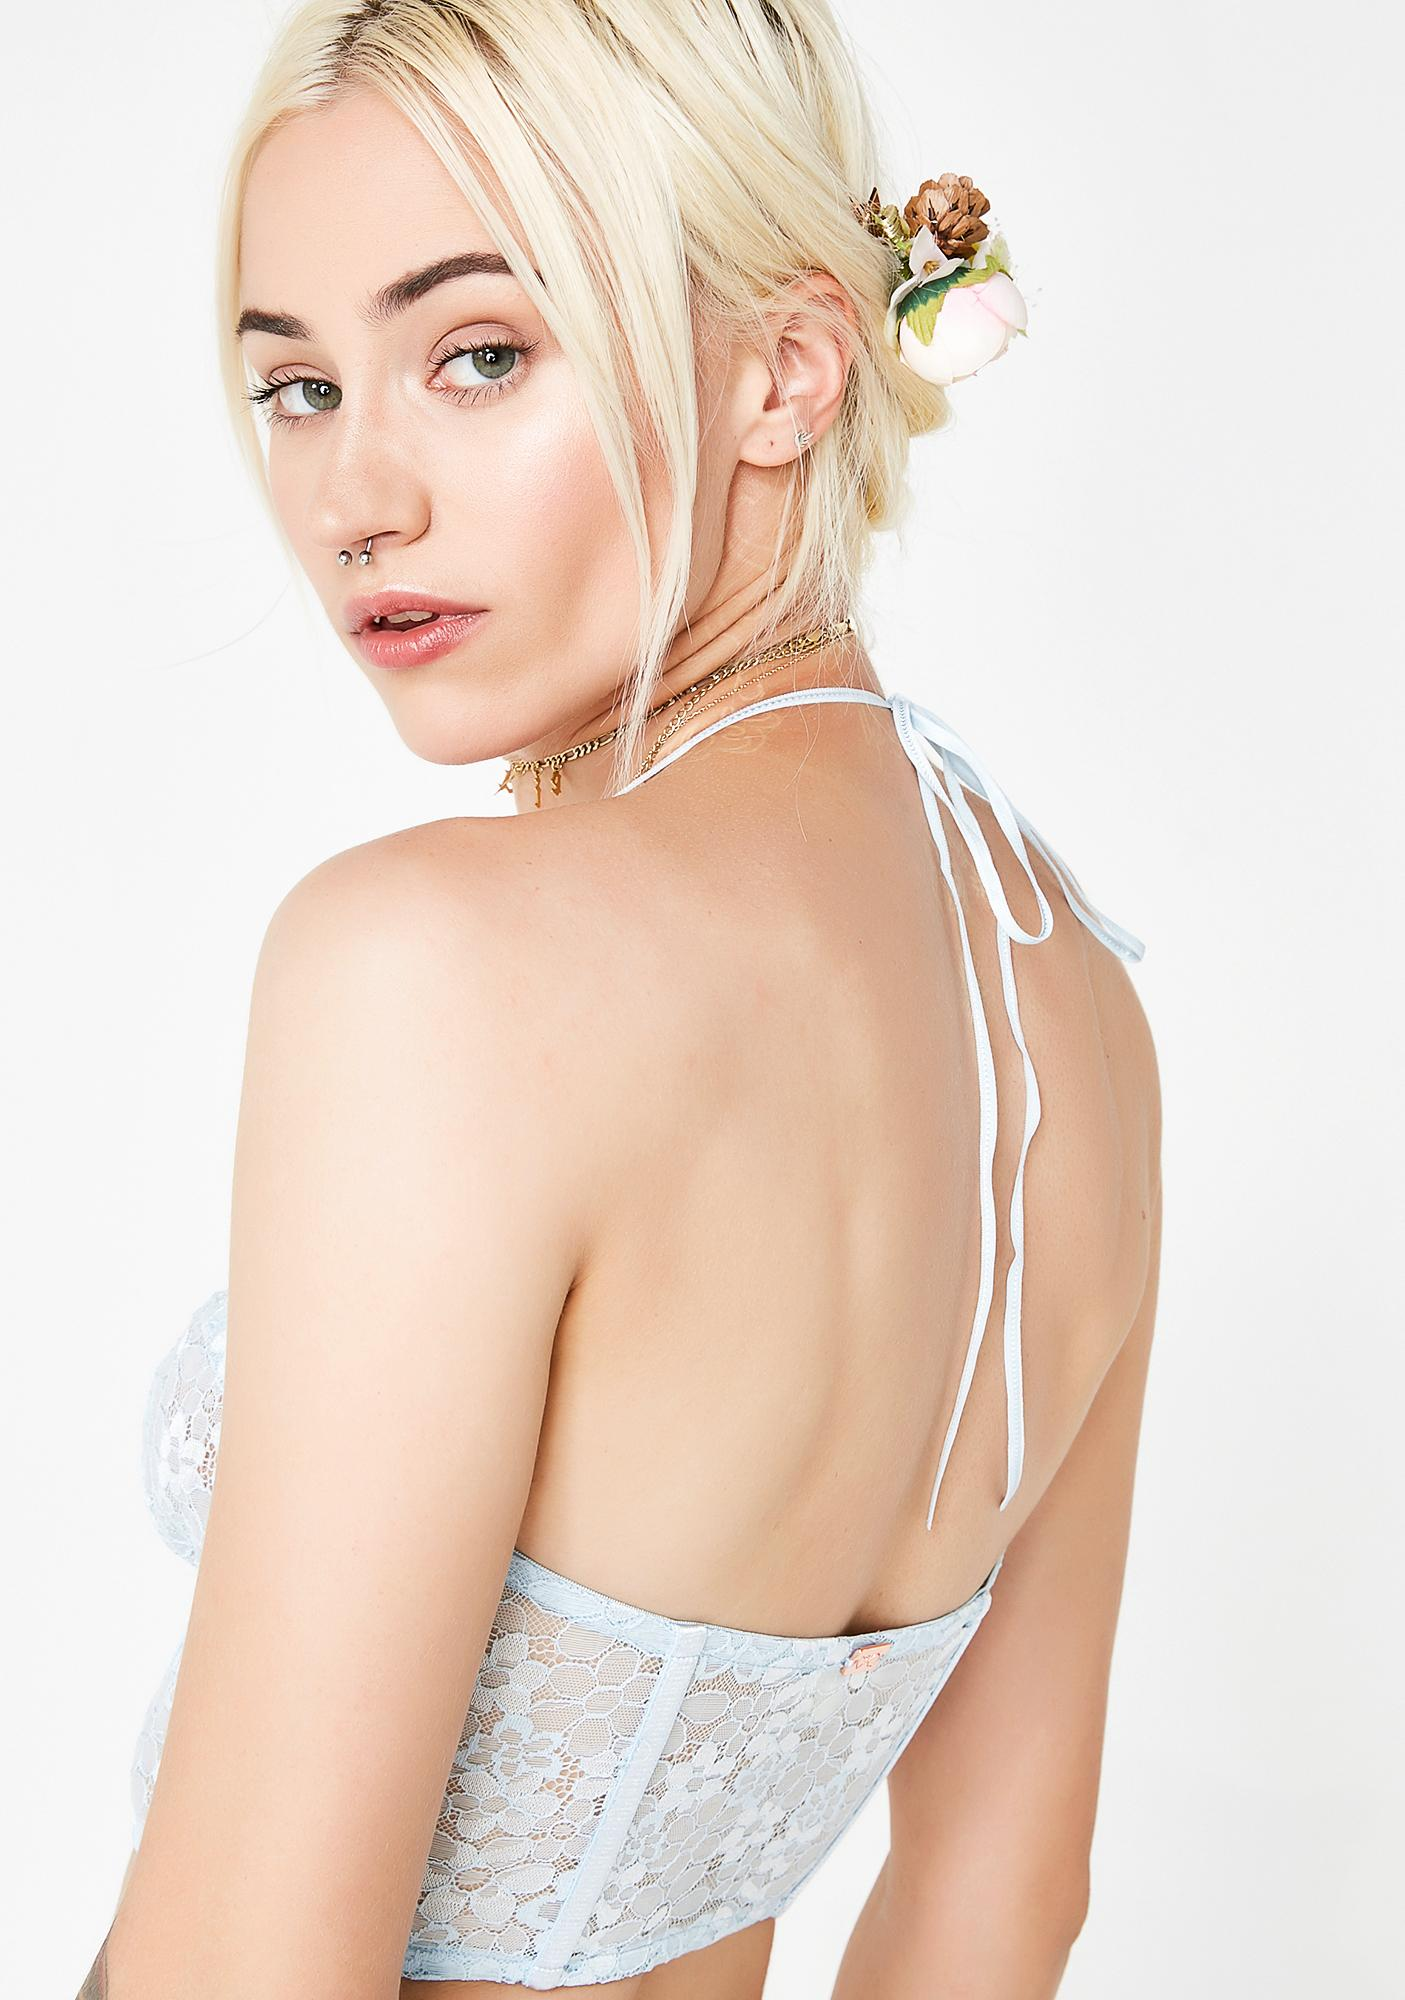 For Love & Lemons Ethereal Visions Underwire Bustier